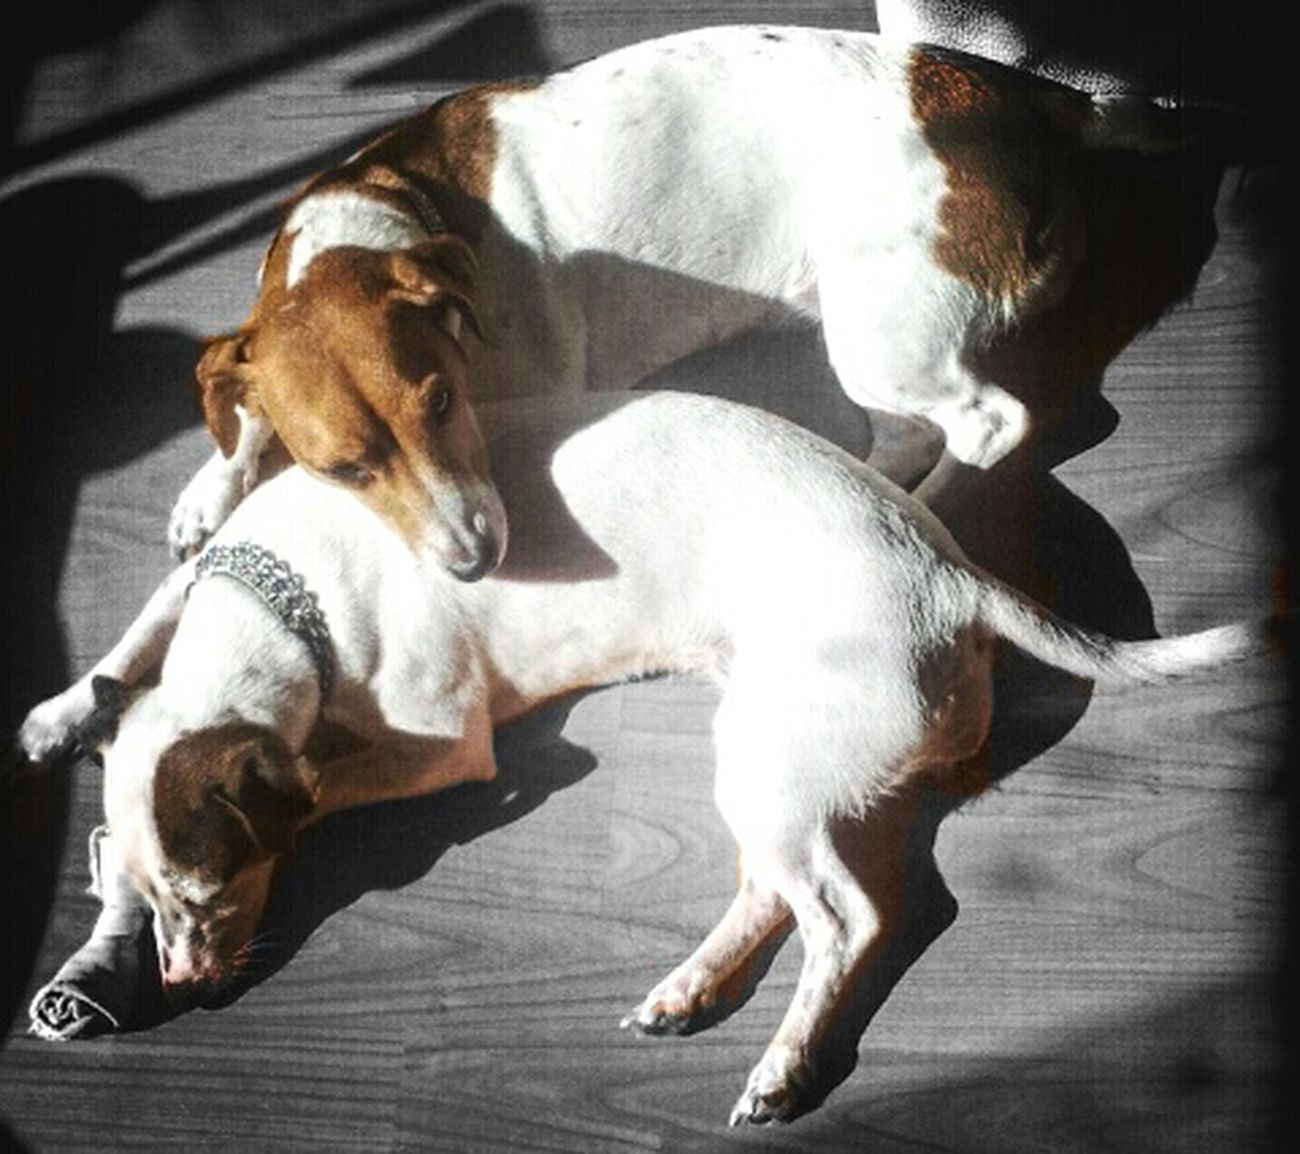 Doglife Dog Love Hermanas Sisters Jackrussell Relaxing Weekend Dogs Popular Photos Doglover